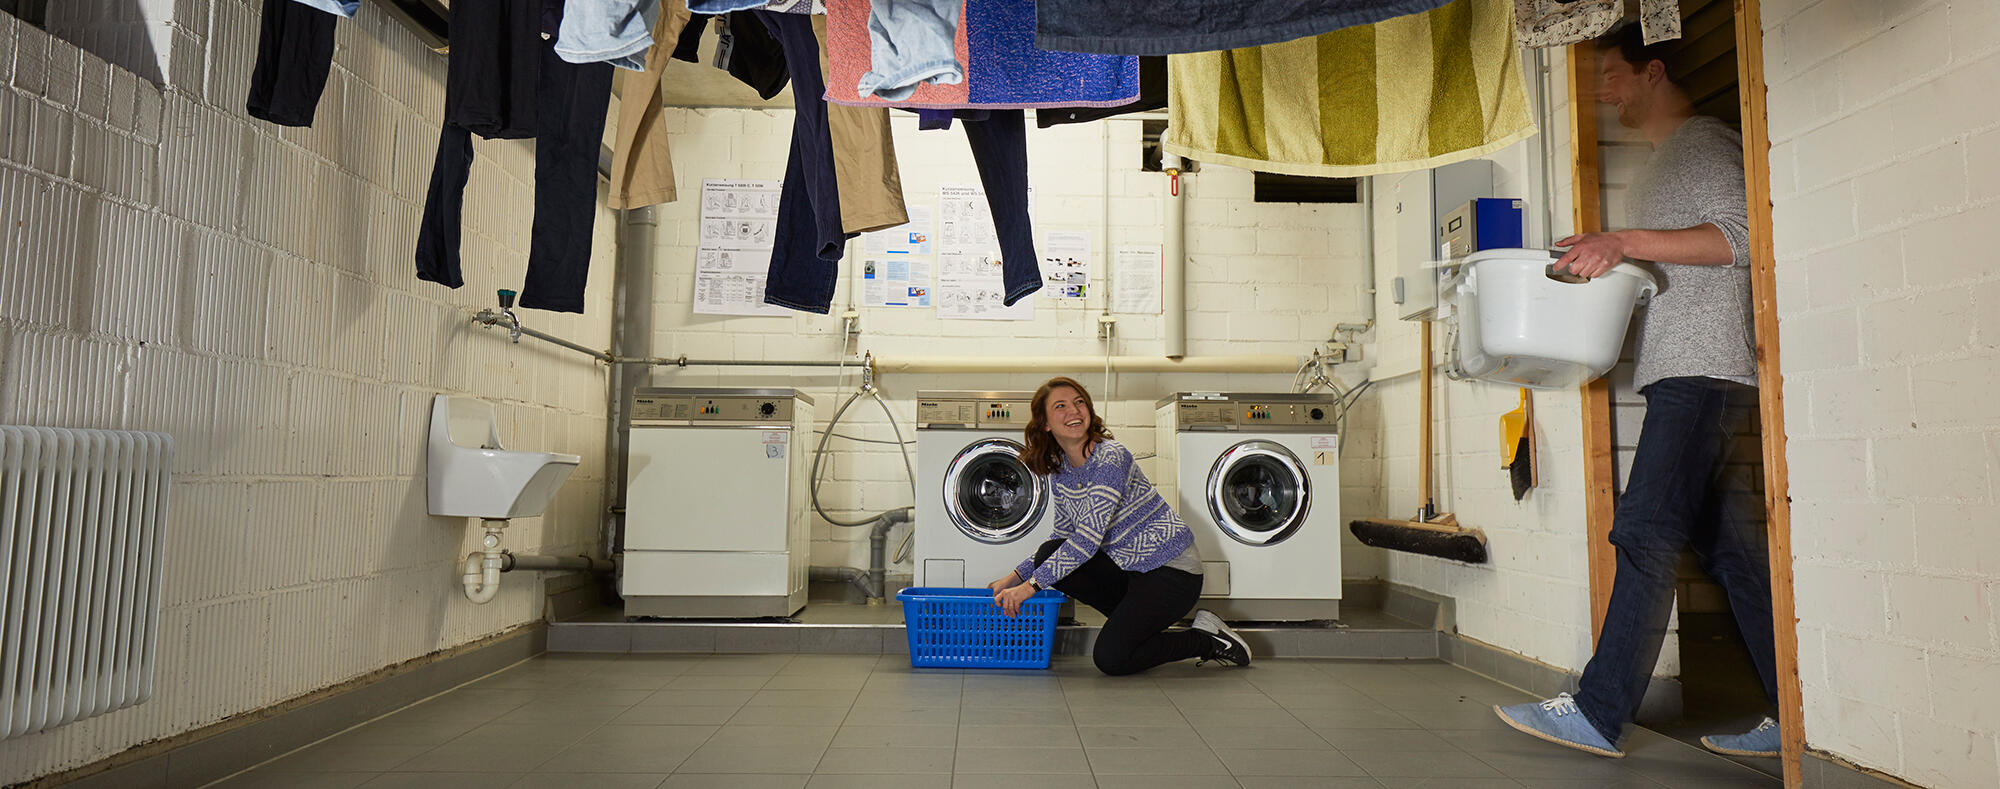 Female student washing clothes